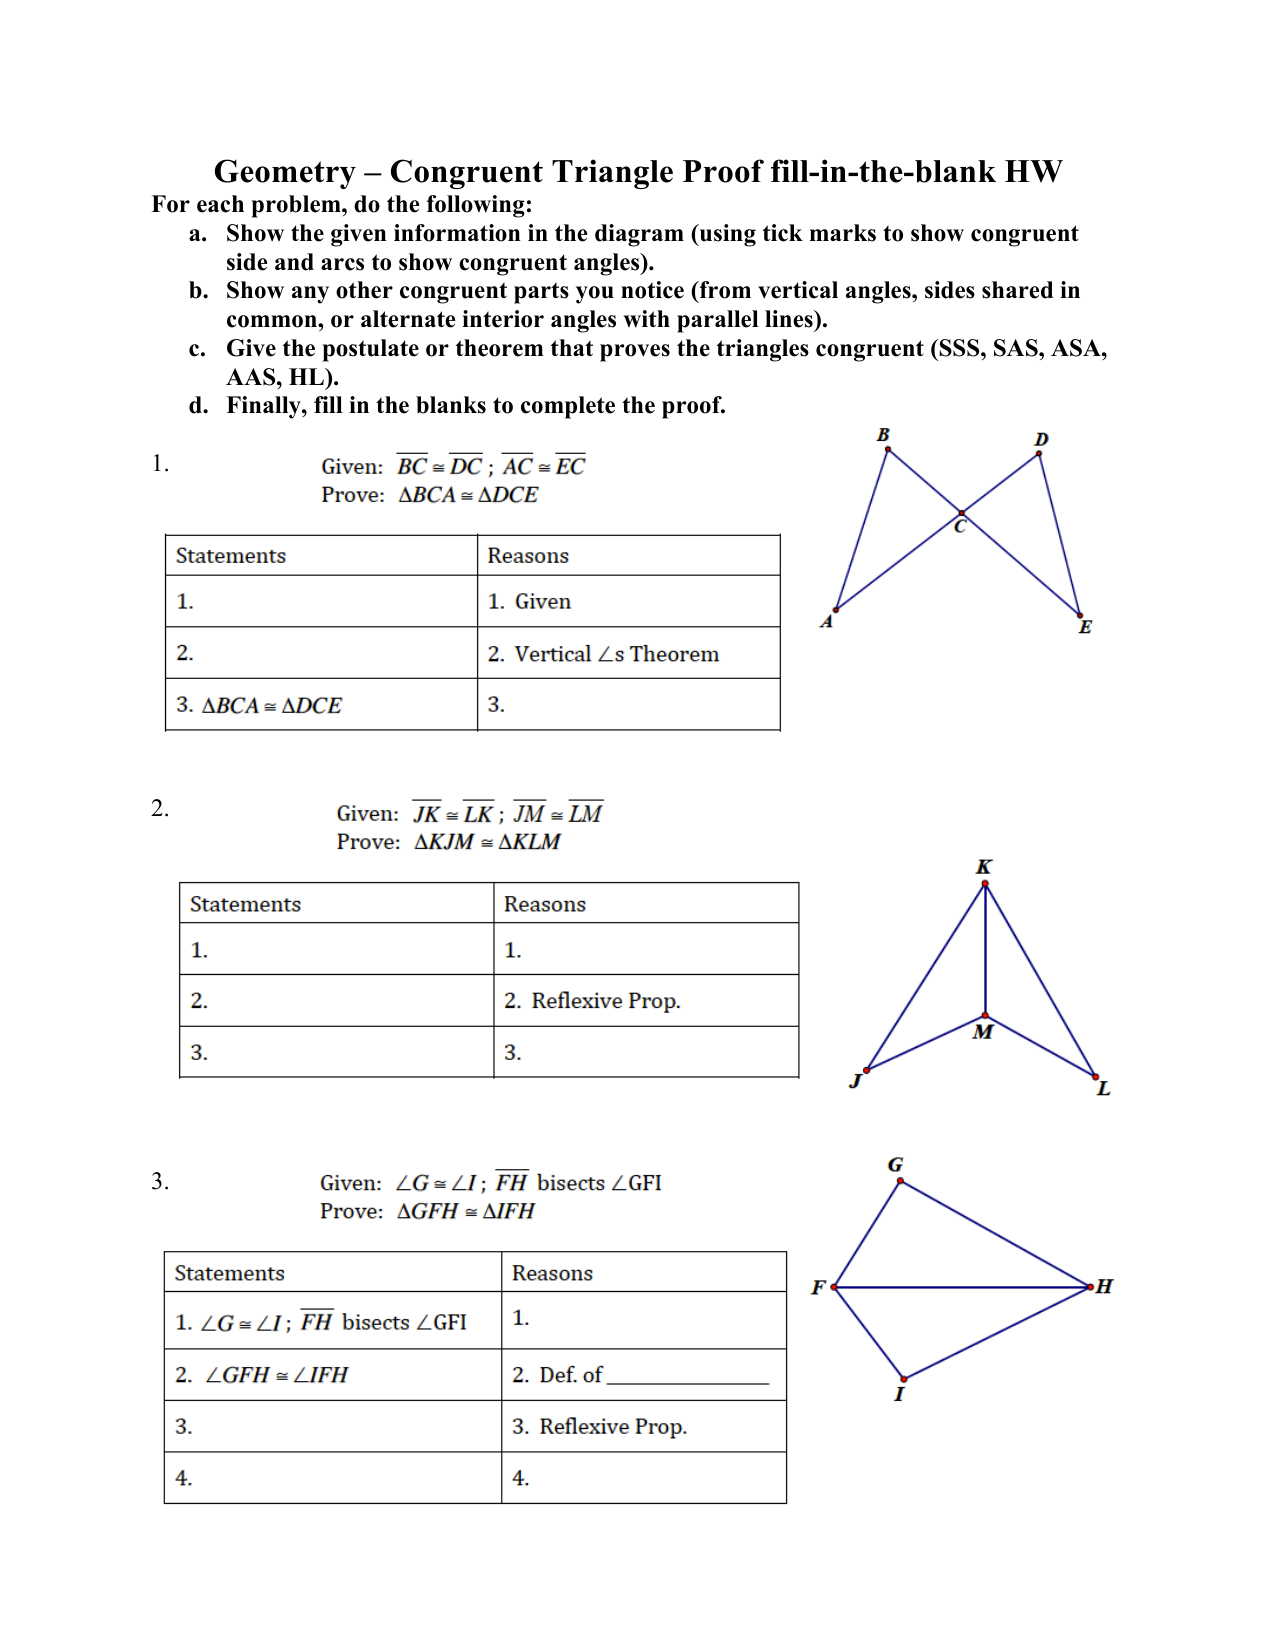 Geometry Congruent Triangle Proof Fillintheblank